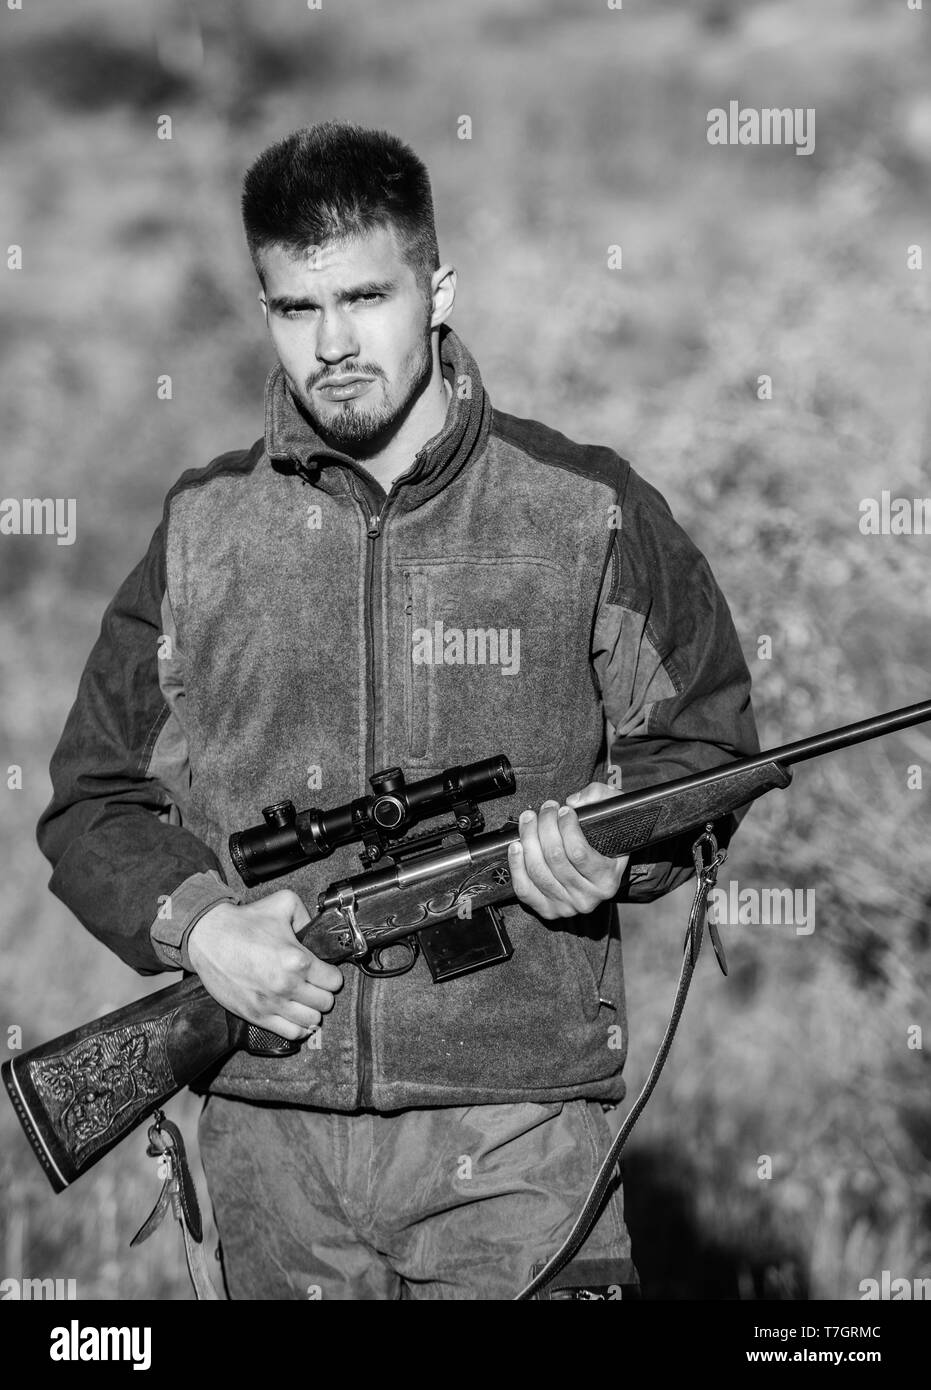 Bearded serious hunter spend leisure hunting. Man brutal unshaved gamekeeper nature background. Hunting permit. Hunter hold rifle. Hunting is brutal masculine hobby. Hunting and trapping seasons. - Stock Image